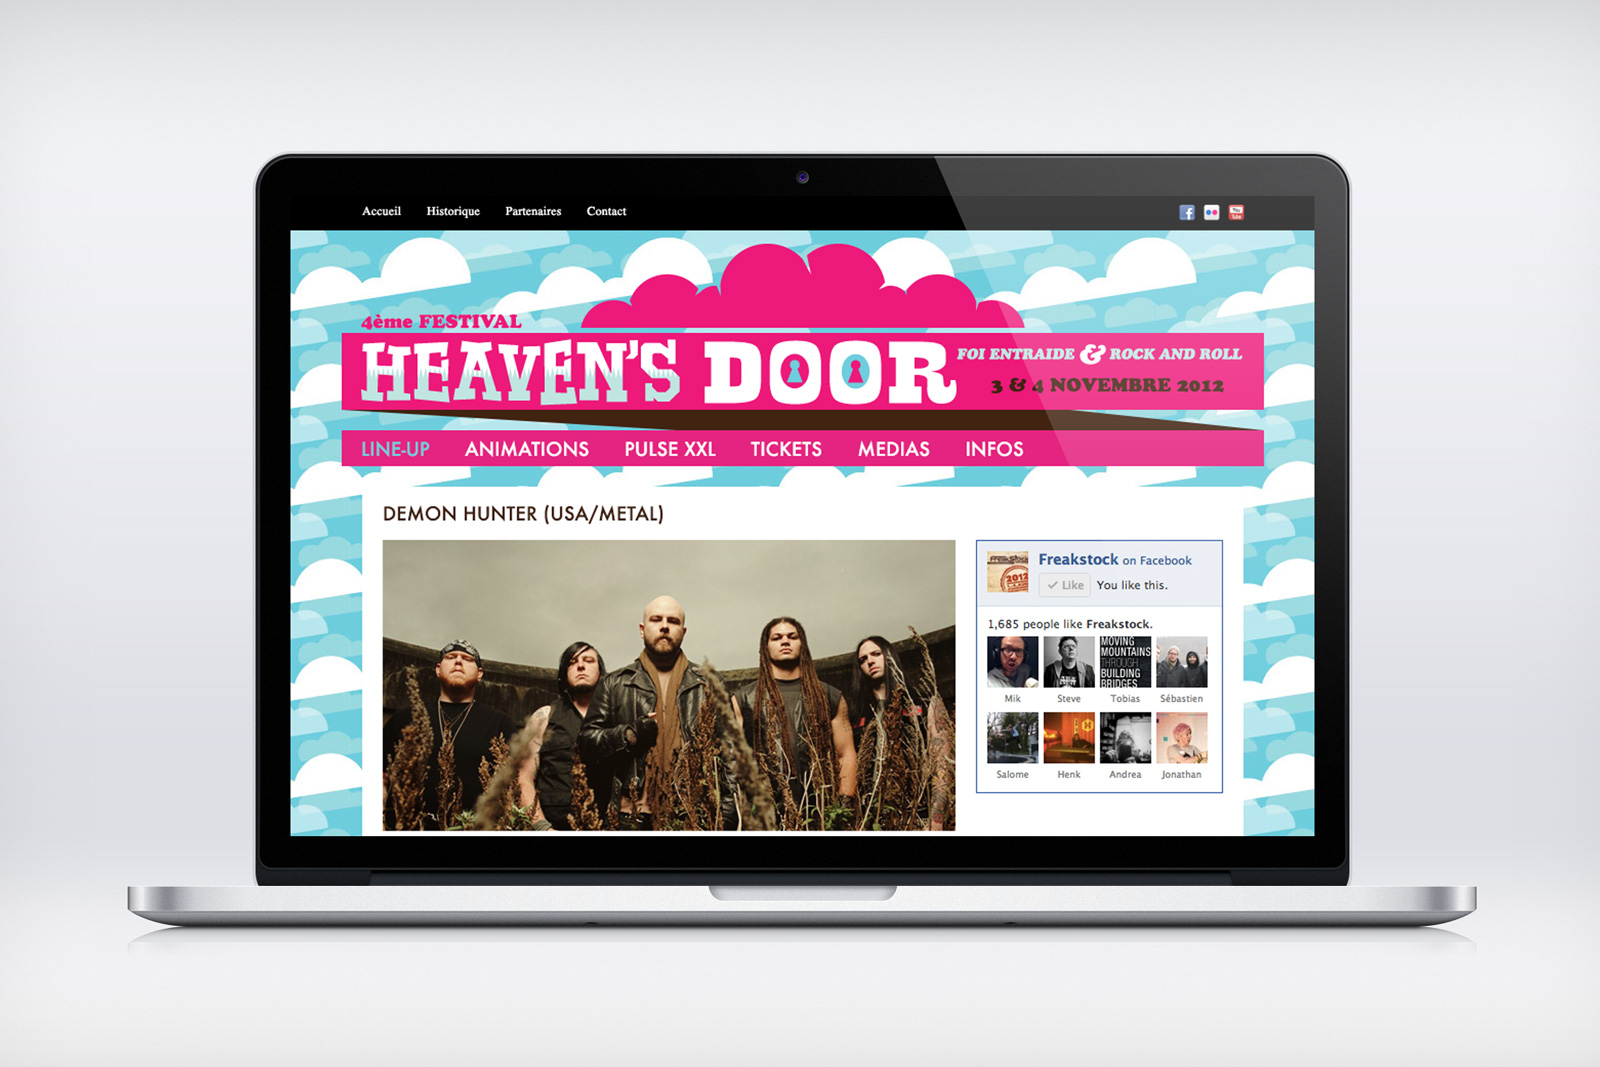 heavens-door-2012-web